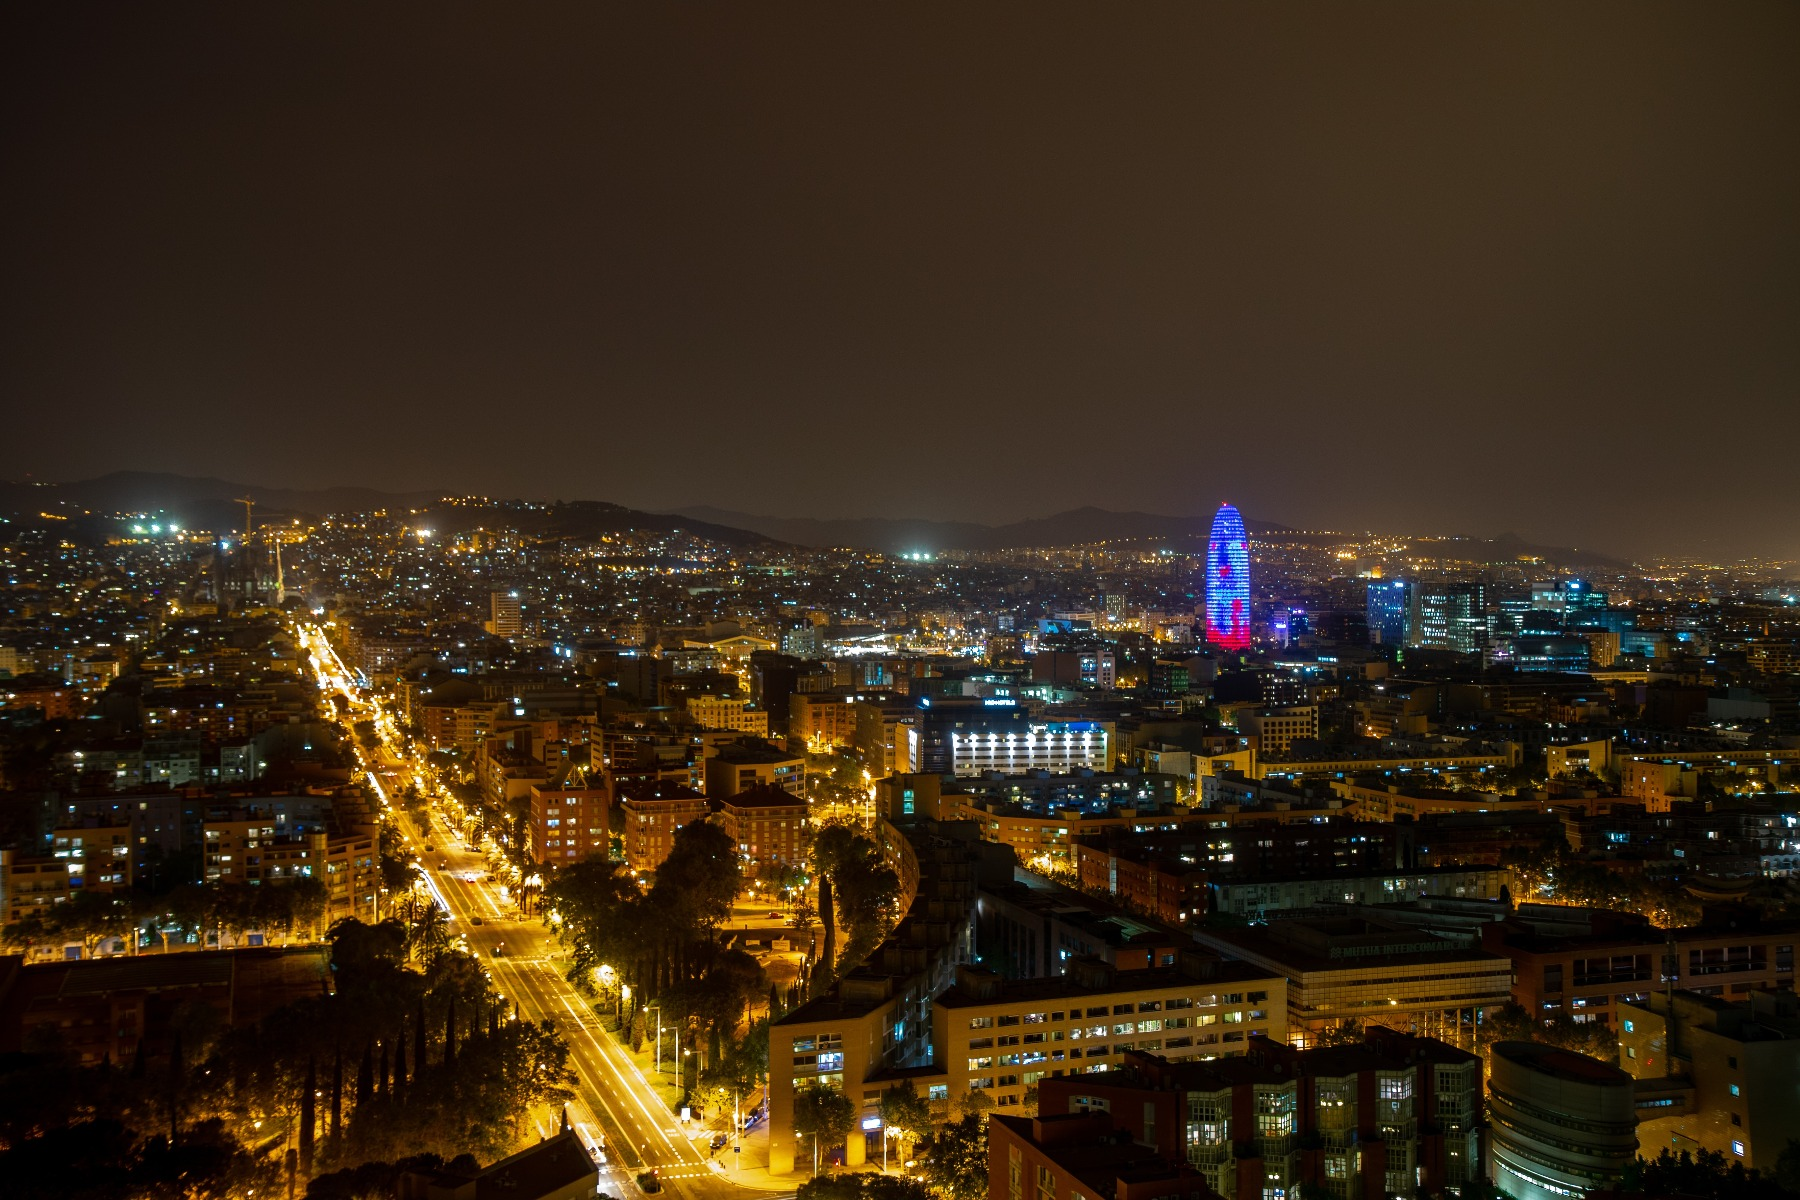 barcelona emobility by night